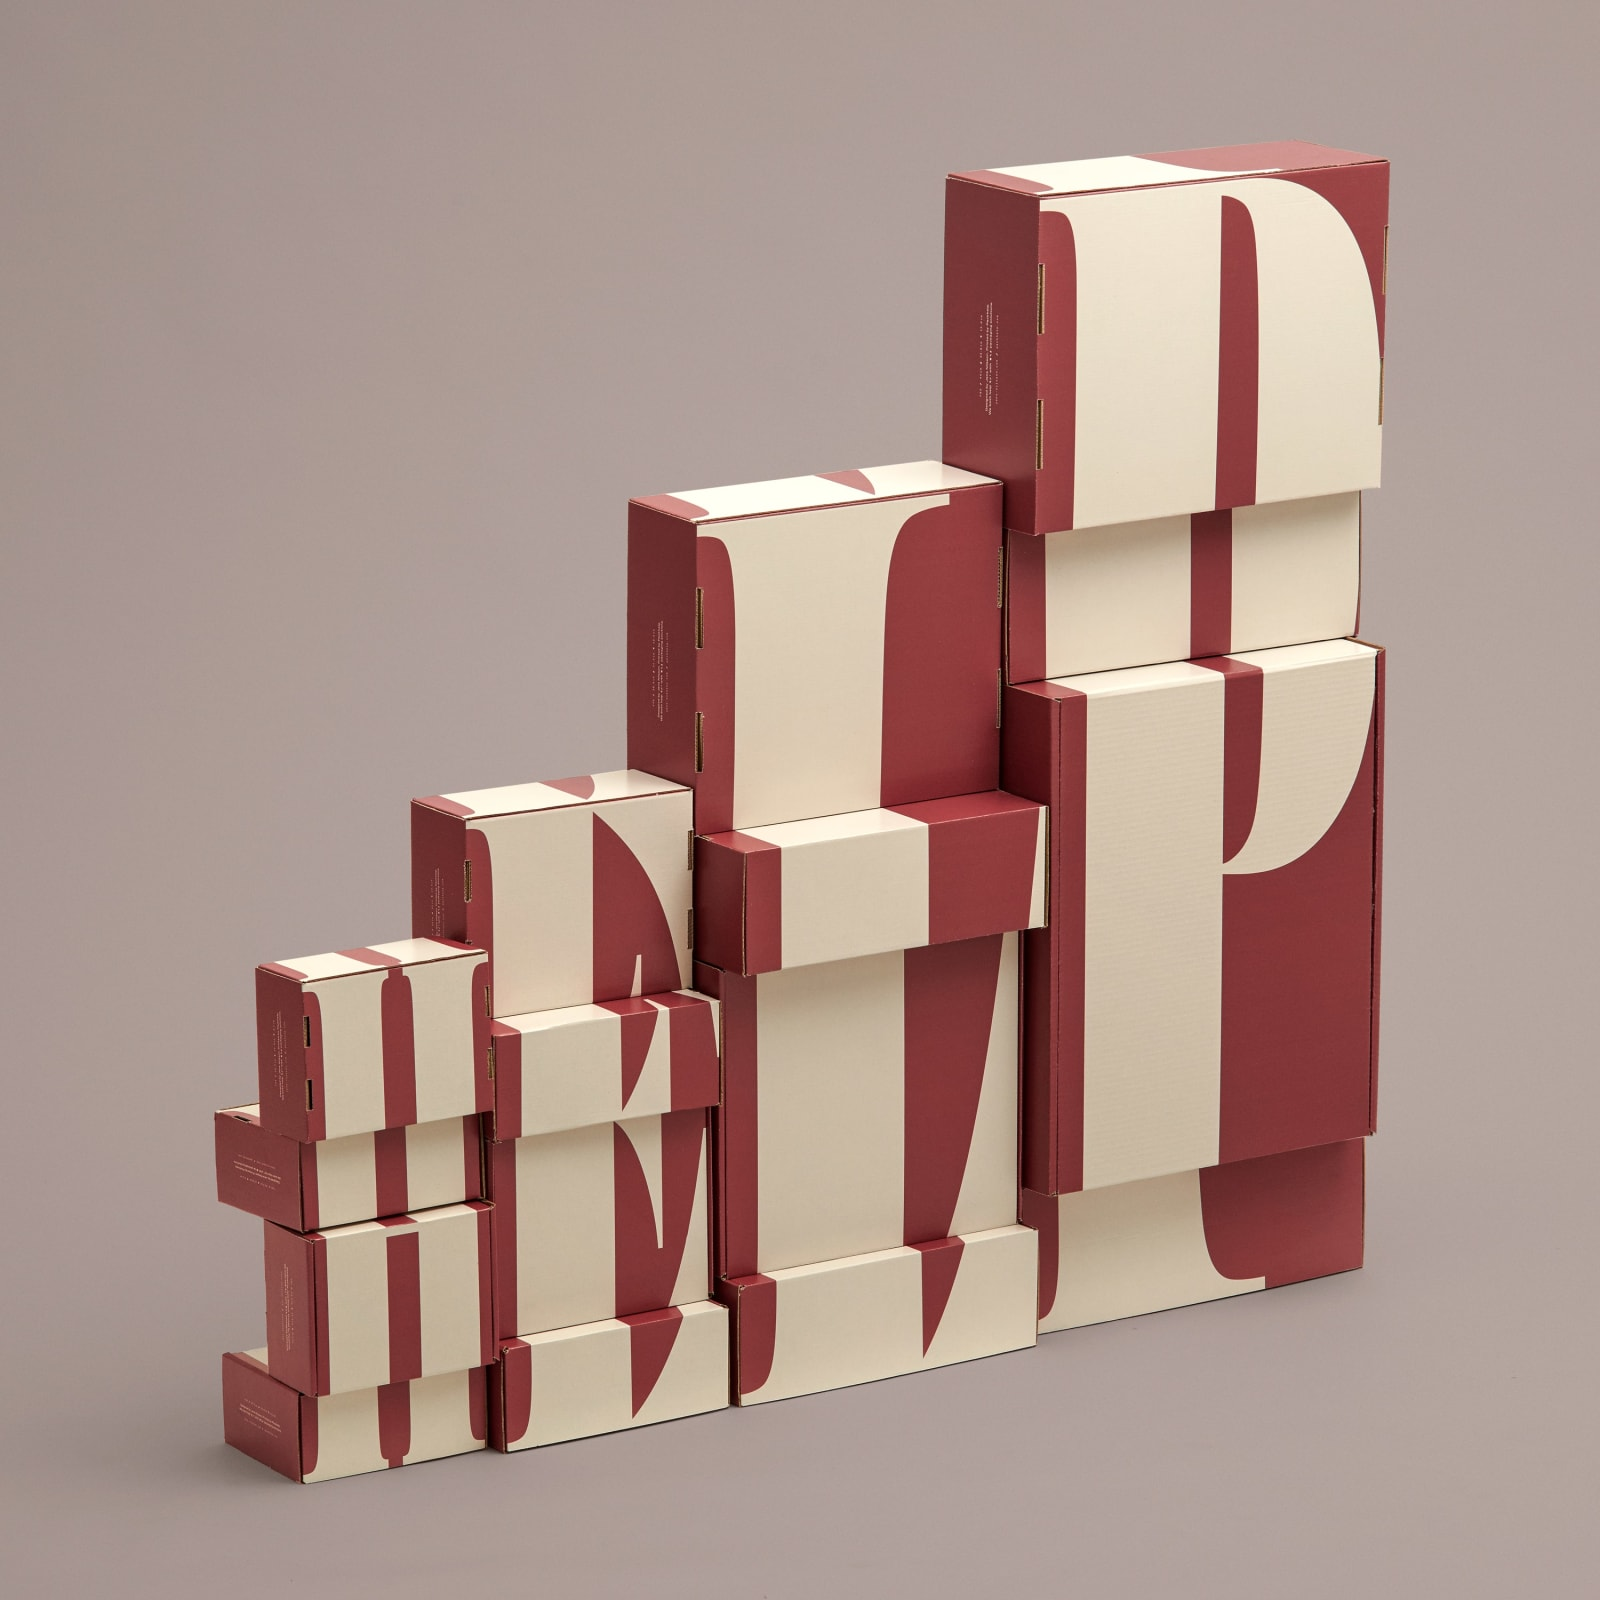 Packhelp — A series of typographic mailer boxes made for Packhelp.